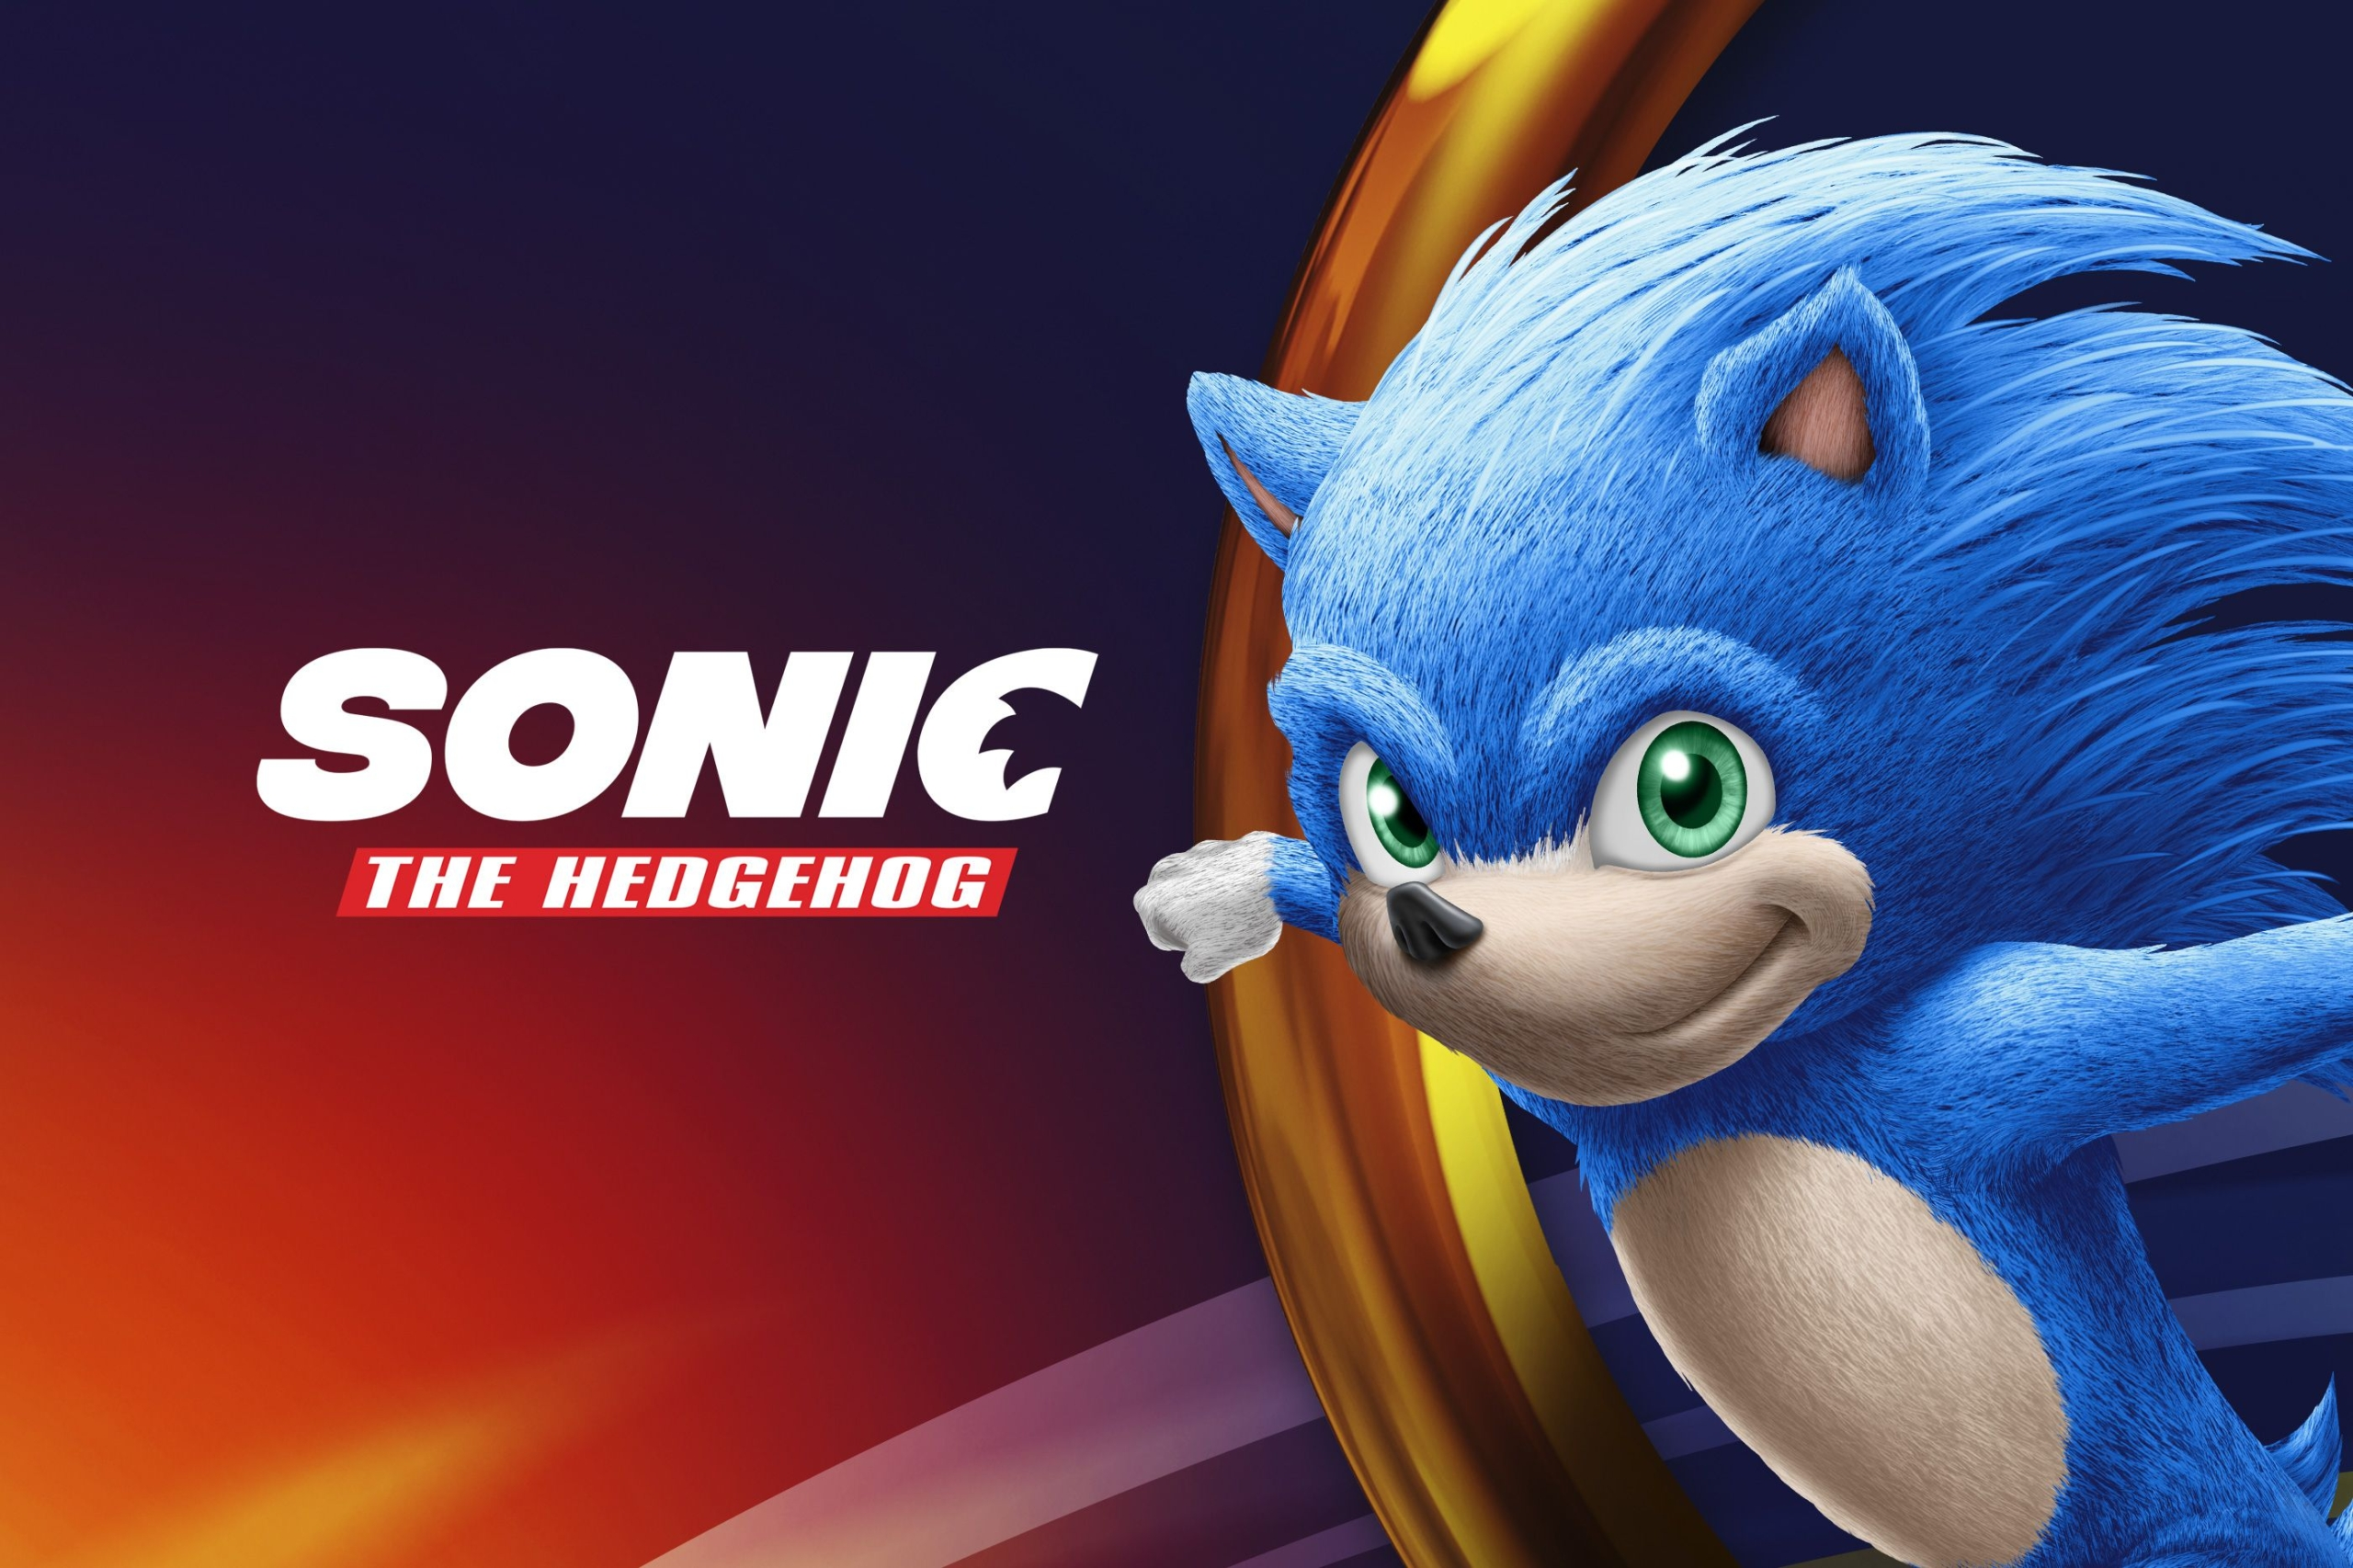 Give Your Walls a Cool New Look With Sonic Movie Wallpaper